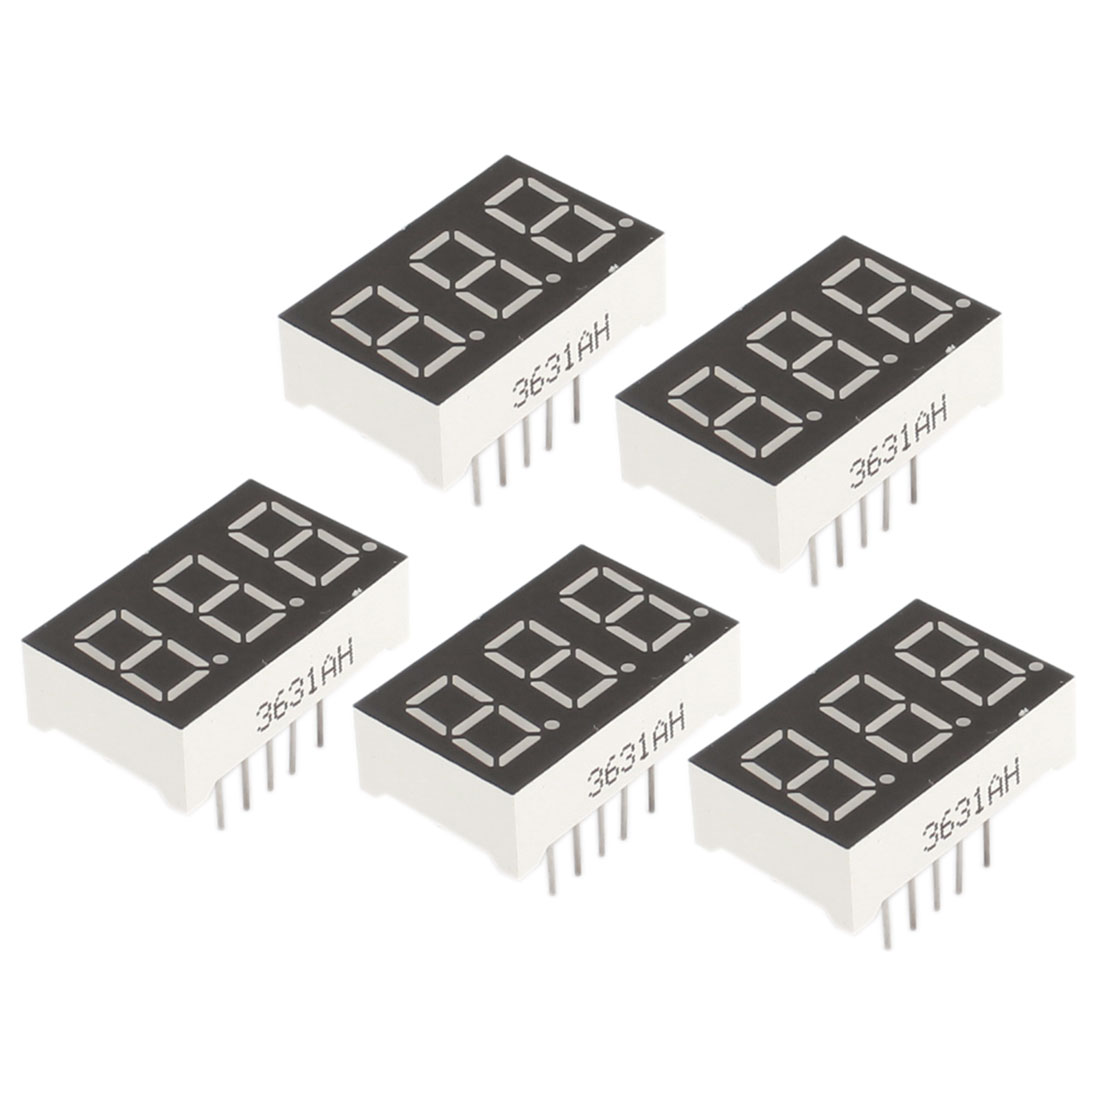 5Pcs 0.36 inch 3-Bit 7-Segment Rectangle Red LED Digit Display Common Cathode Tube 11-Pin